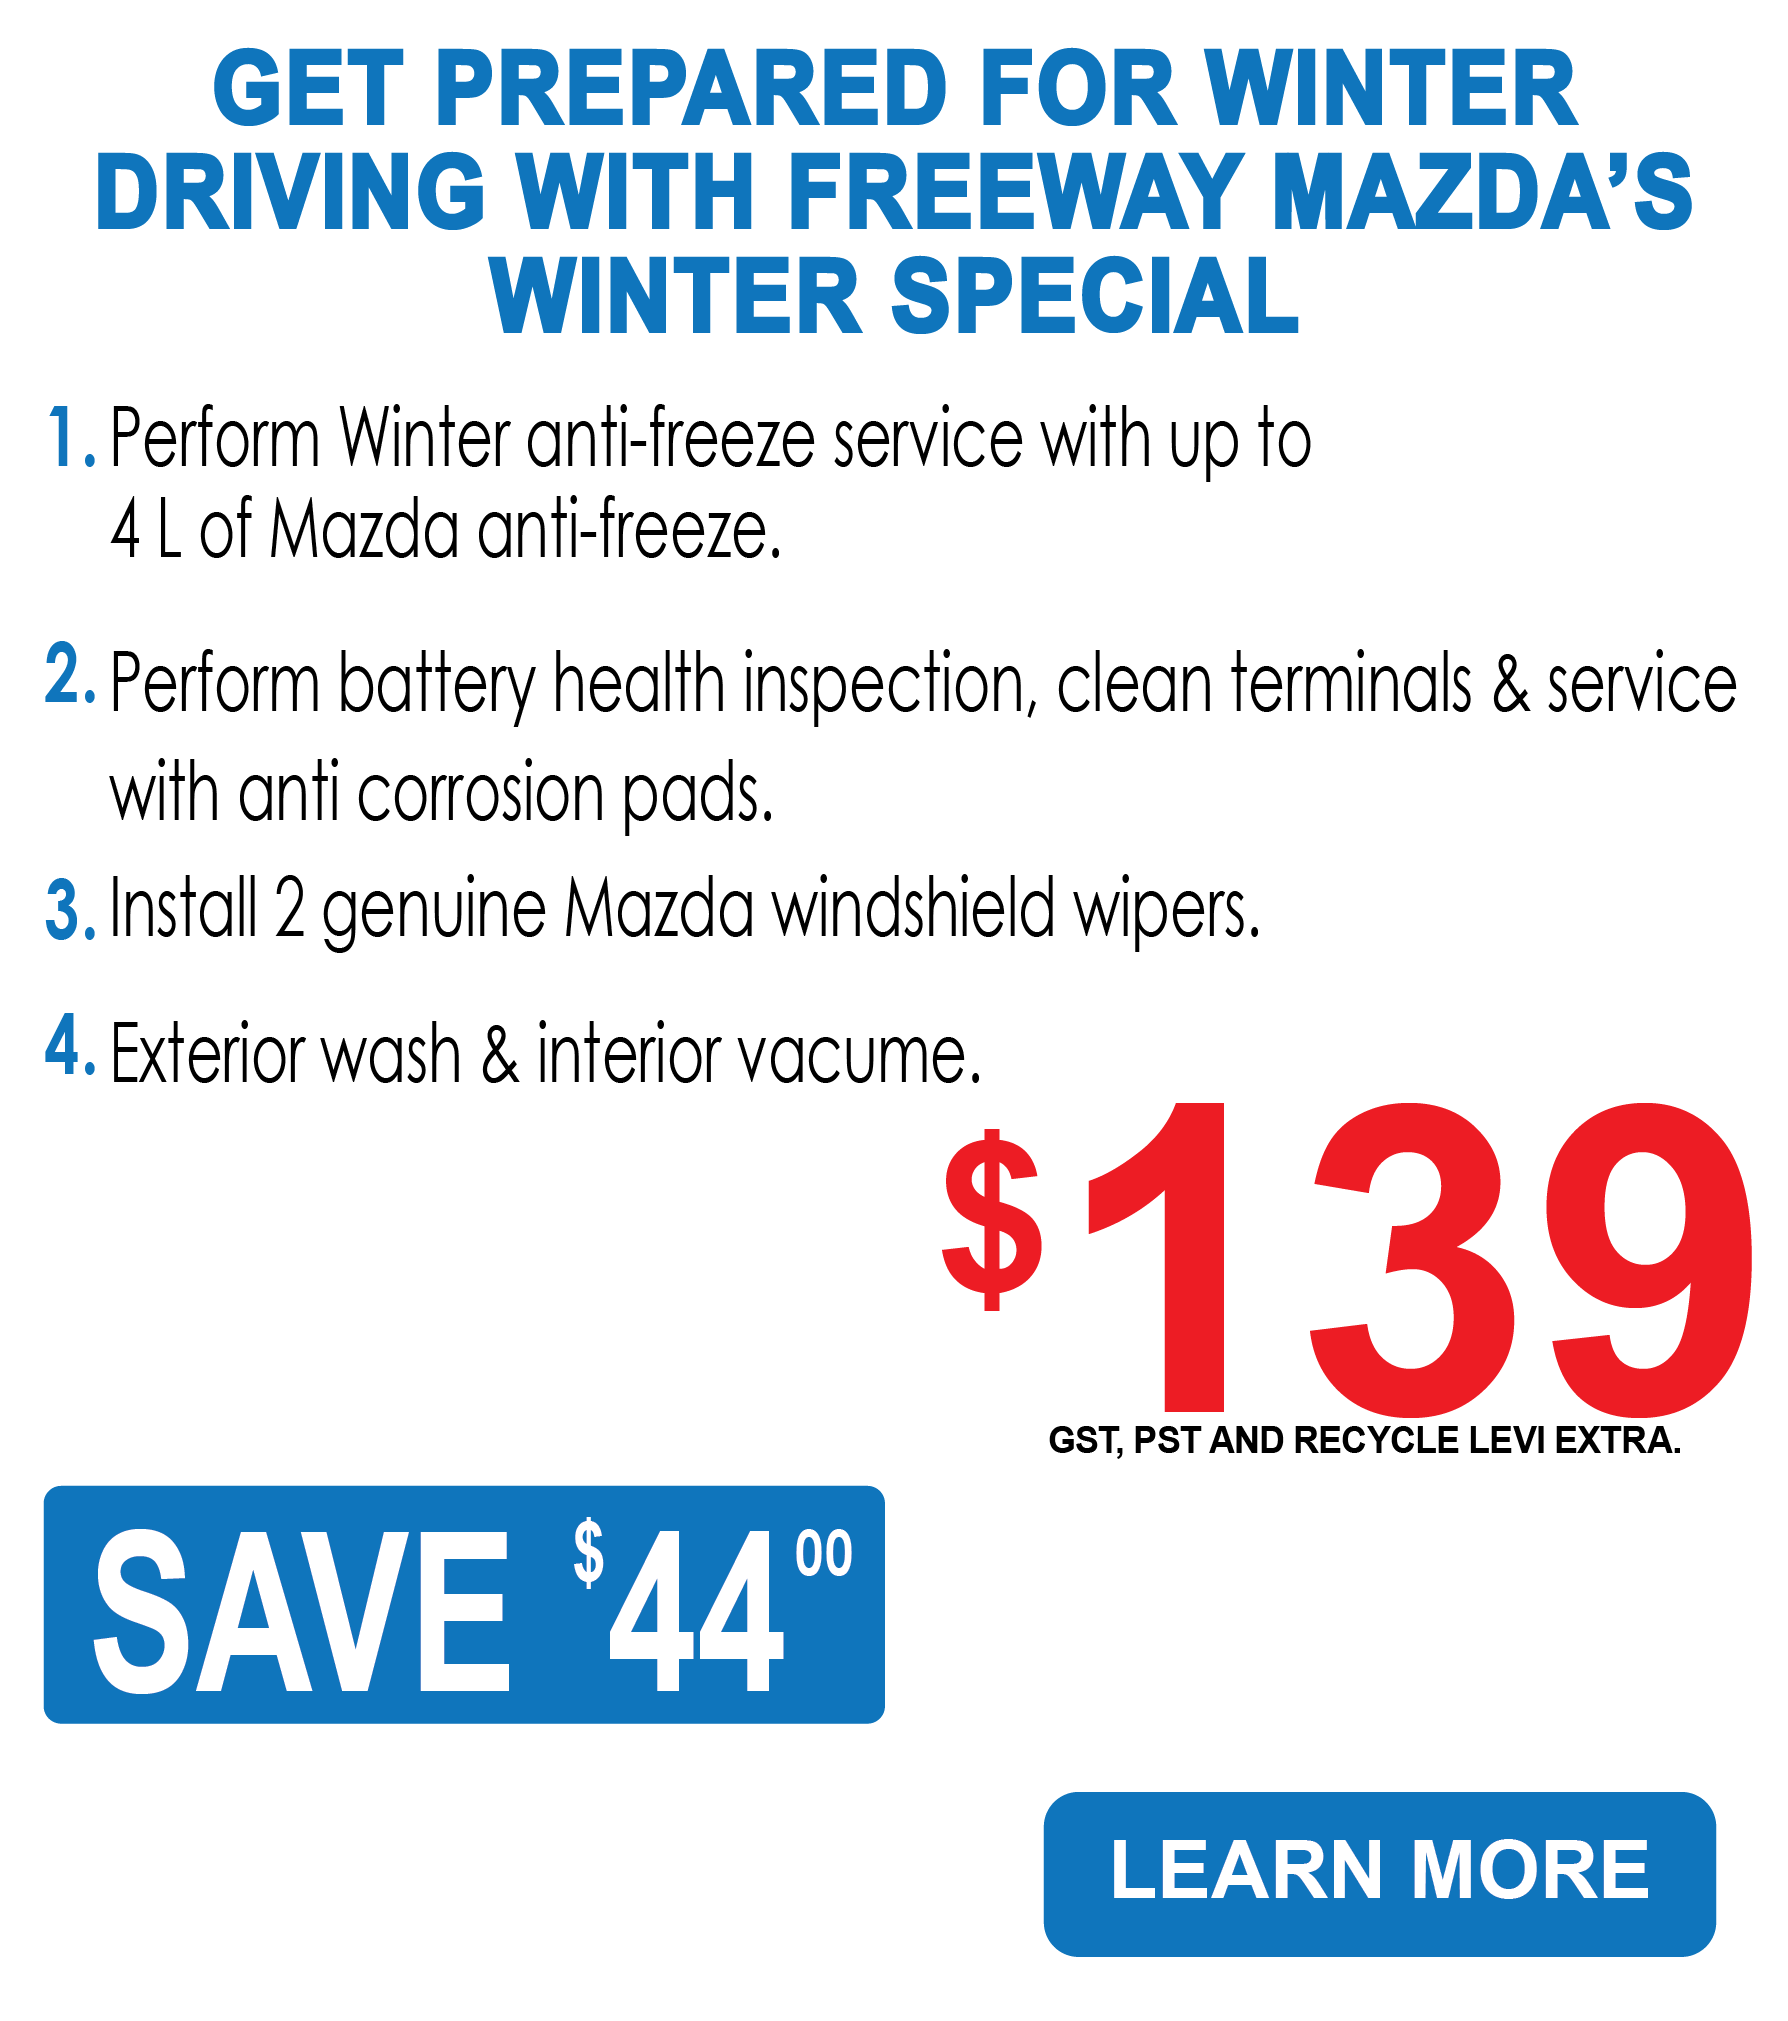 Freeway Mazda - Winter Special